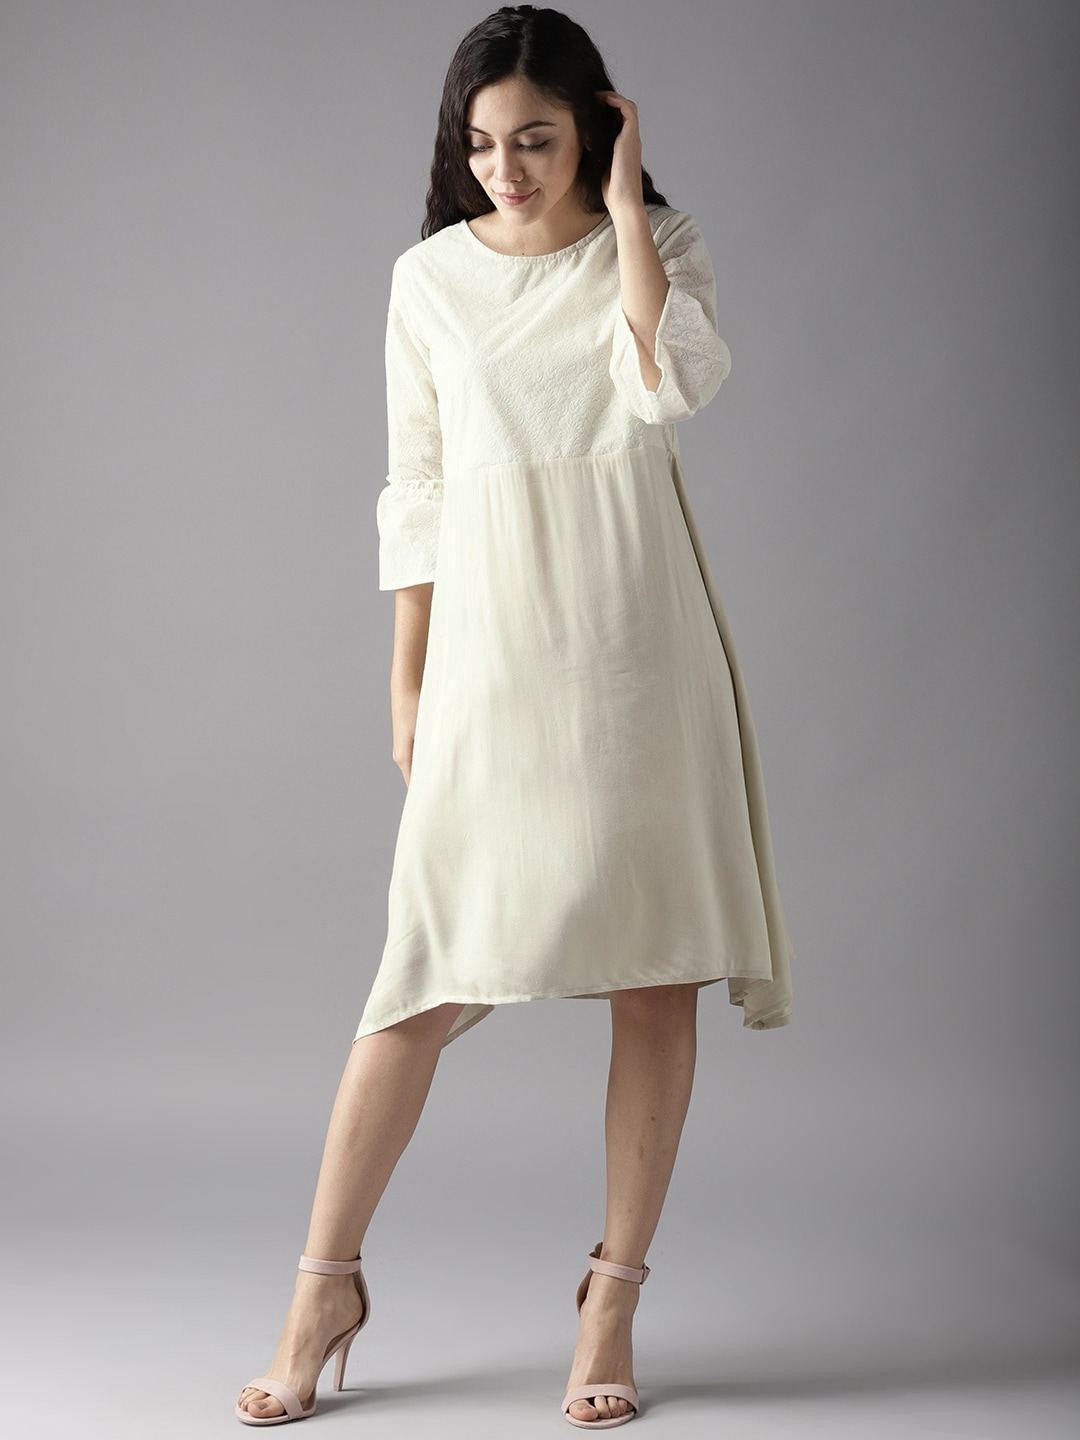 31ef63a78f5f Cream Dresses - Buy Cream Dresses online in India